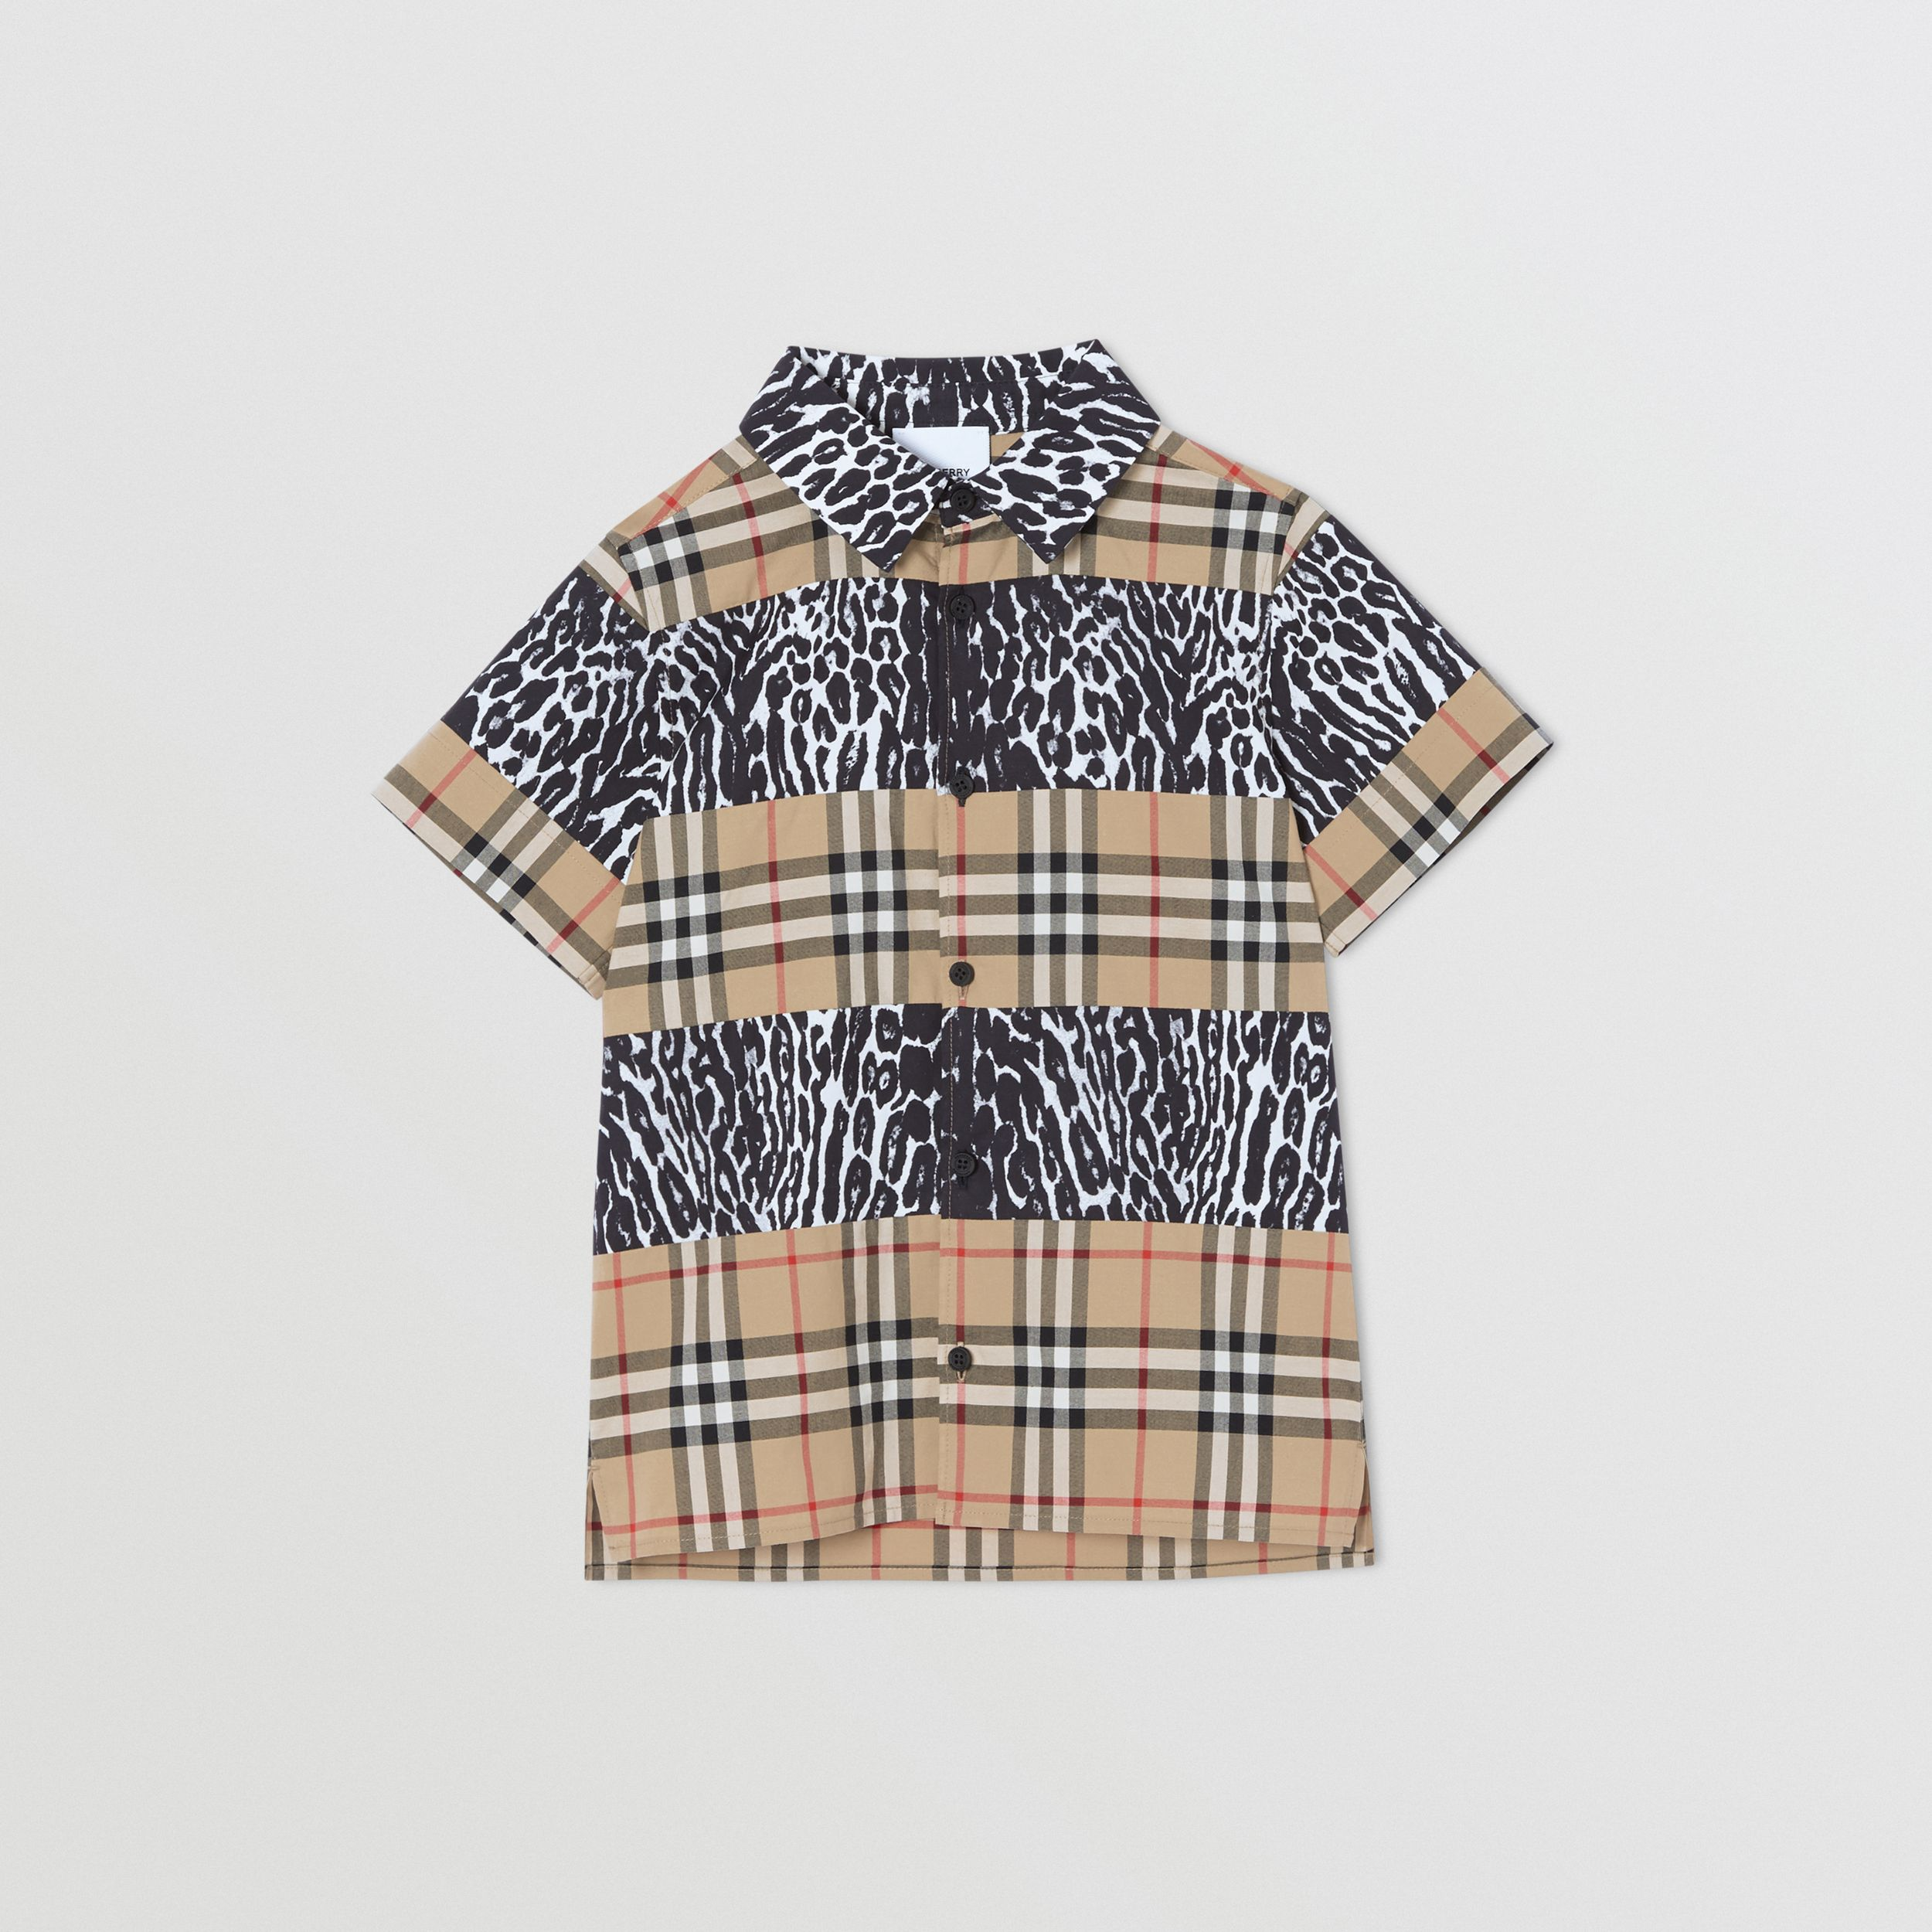 Short-sleeve Vintage Check and Leopard Print Shirt in Archive Beige | Burberry - 1